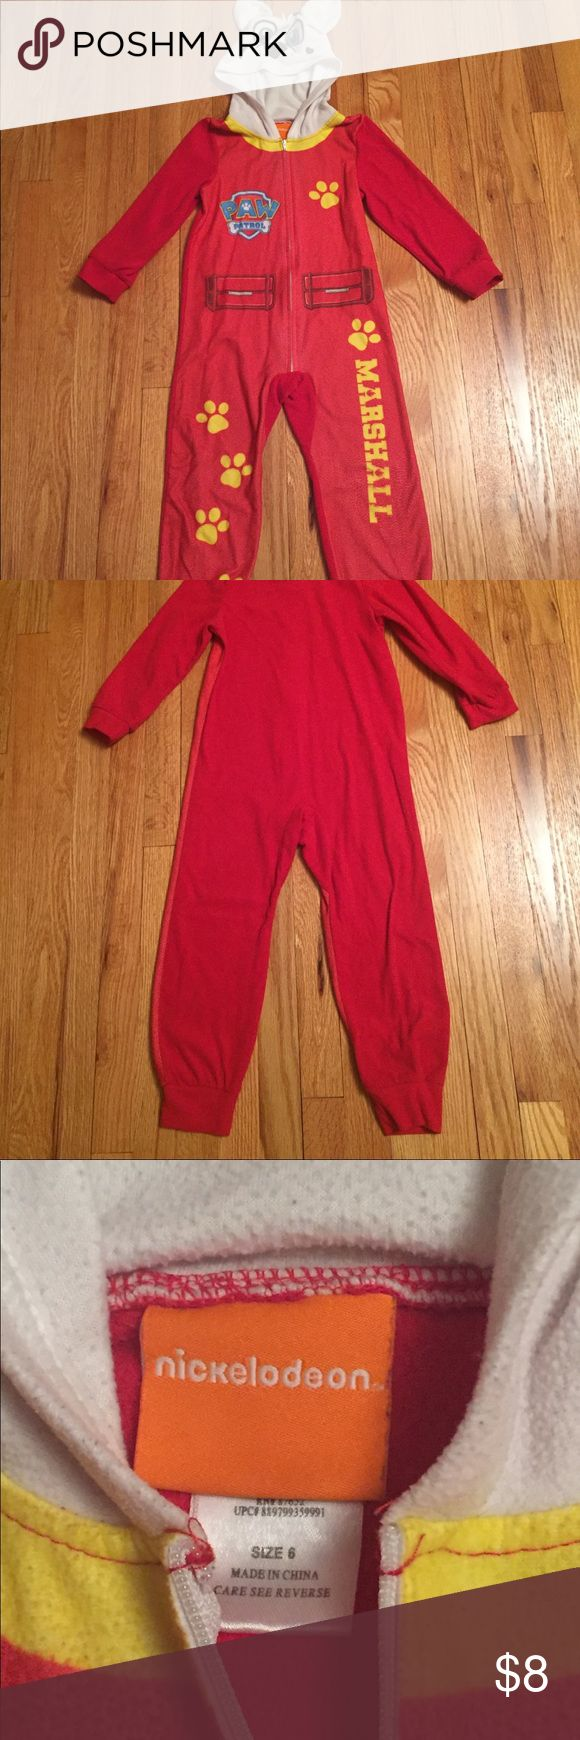 Fleece Paw Patrol Marshall 1 piece zip up pajamas Fleece Paw Patrol Marshall one piece zip up pajamas, size 6. These pajamas feature a front zip and hood with Marshall's dog ears. Retails new for $14.94 at Walmart. Worn a few times.  **Offers welcome and bundles receive a discount. Smoke and pet free. Gently used clothing is in excellent used condition with no flaws or damage. Pajamas